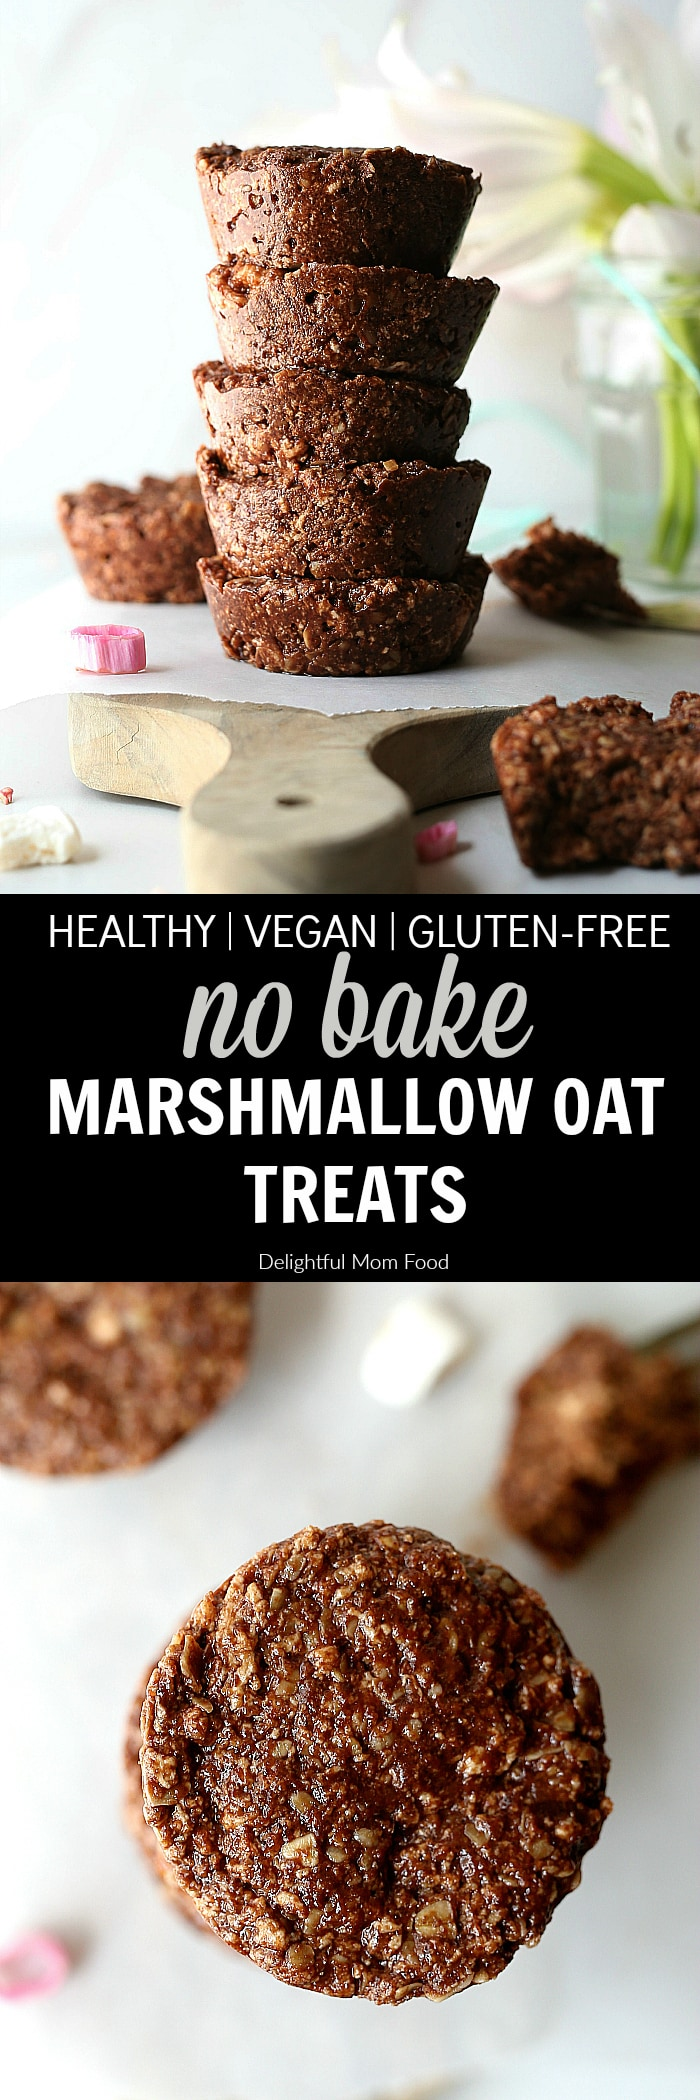 No Bake Treats - Easy no bake treats made with chocolate peanut butter marshmallow and oats taste like a cookie and are naturally gluten-free, vegan and dairy-free. It's a delicious quick dessert or snack treat ready in less than 30 minutes! | #nobake #treats #sweets #recipe #dessert #glutenfree #vegan #healthy #quick #easy #chocolate #peanutbutter #dairyfree #marshmallow | Recipe at delightfulmomfood.com